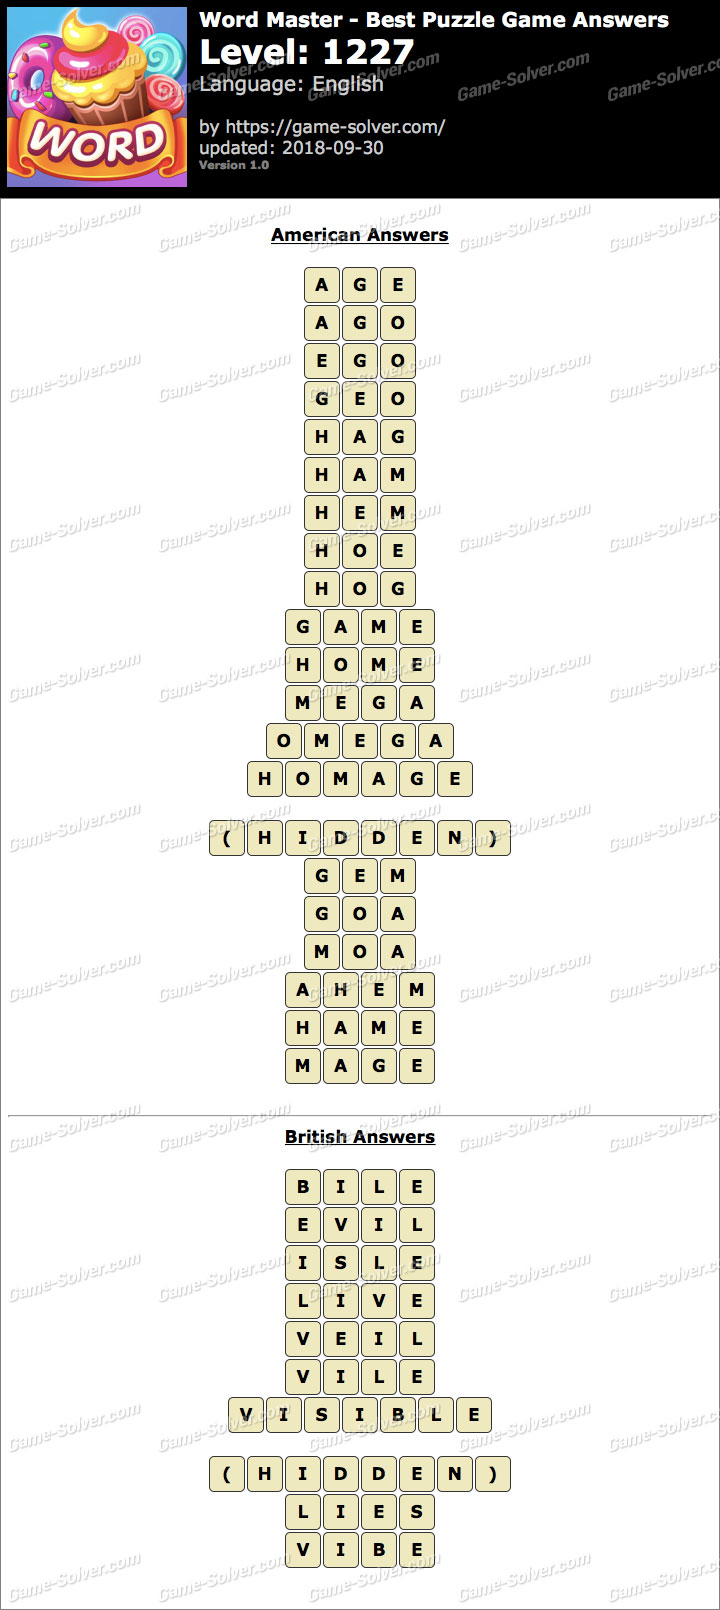 Word Master-Best Puzzle Game Level 1227 Answers